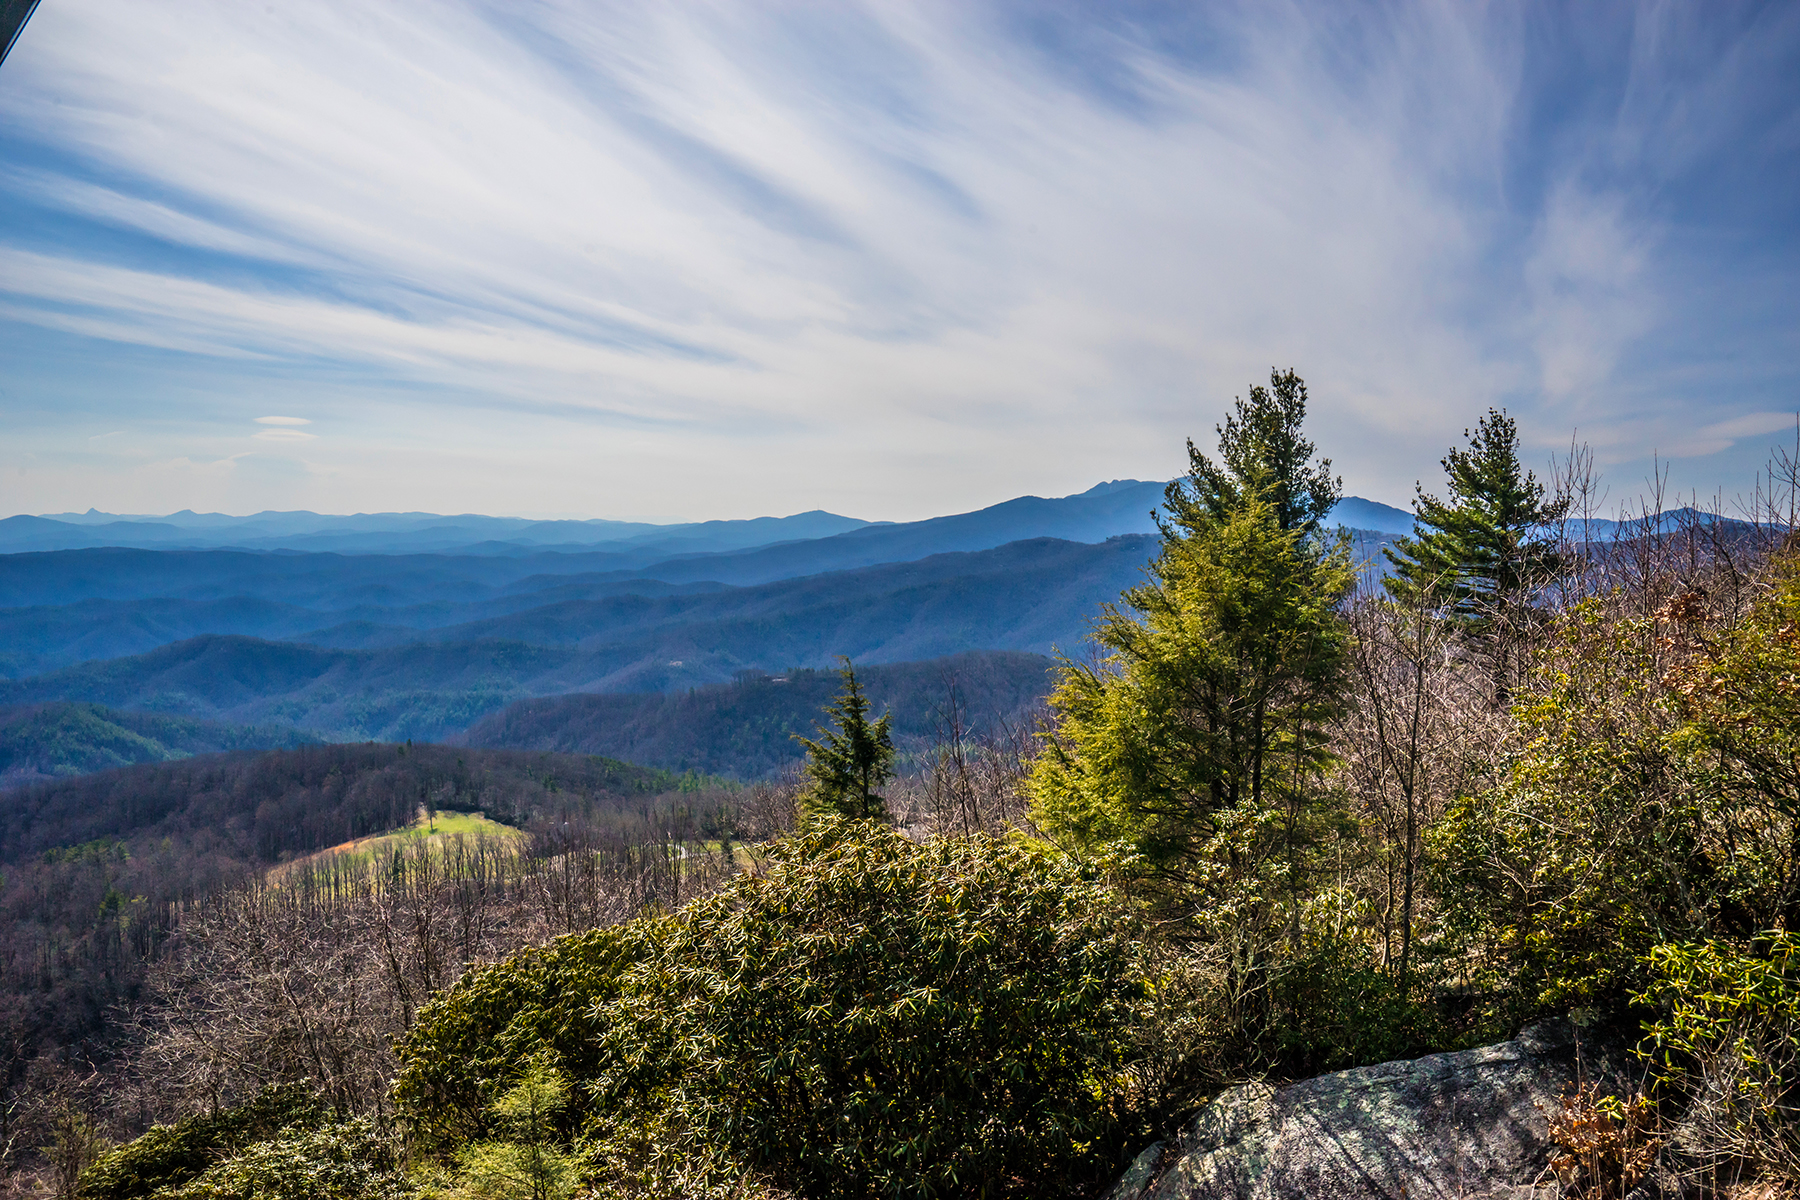 Condominium for Sale at BLOWING ROCK - CHATEAUX CLOUD 1966 Main St 2, Blowing Rock, North Carolina 28605 United States